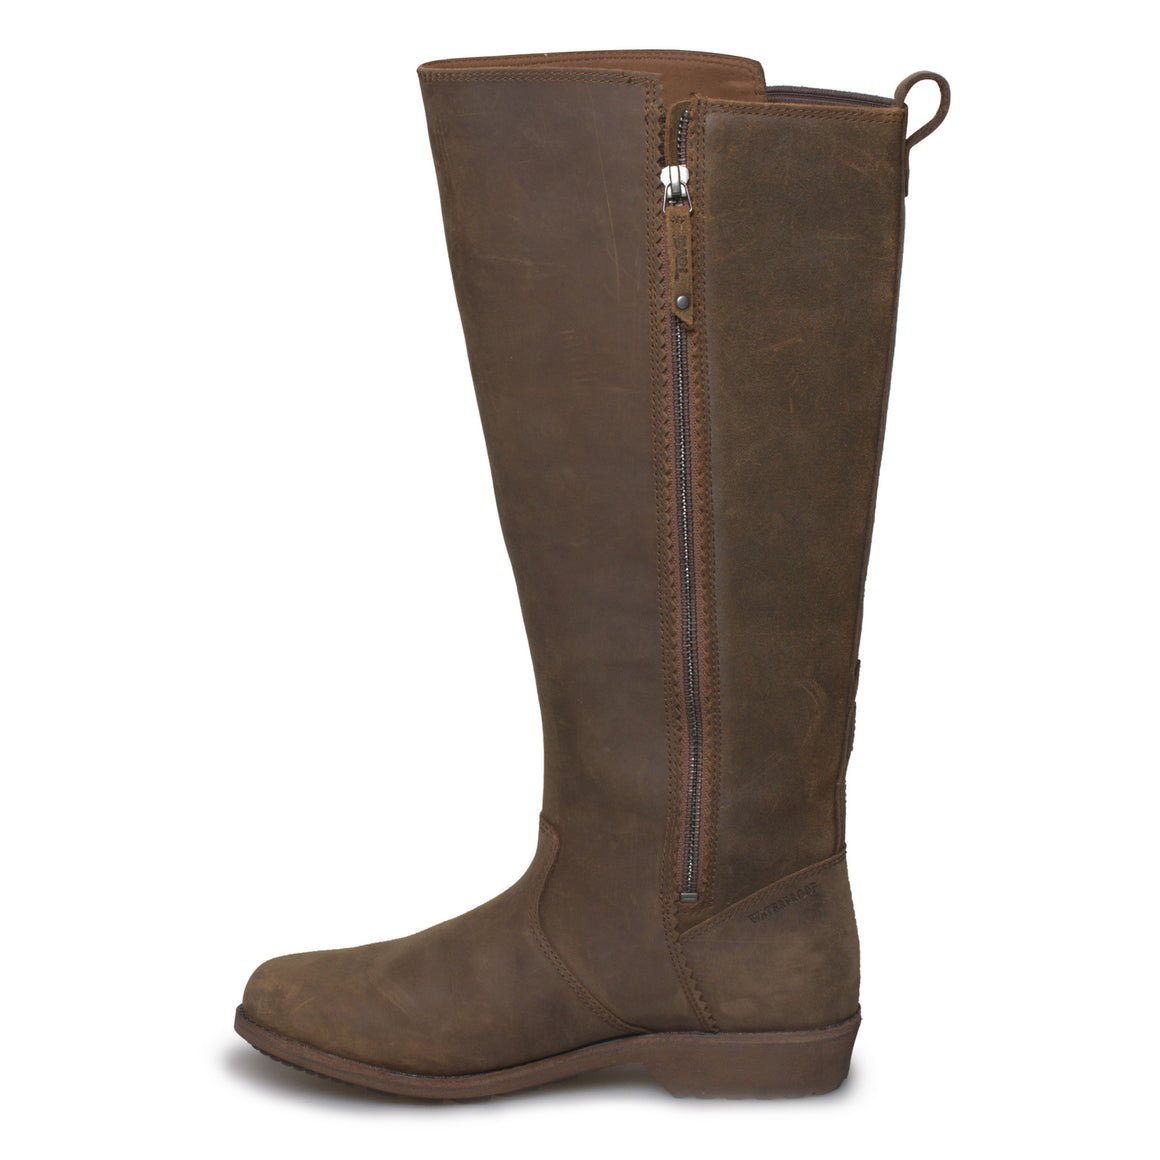 Teva Ellery Tall WP Bison Boots - Women's